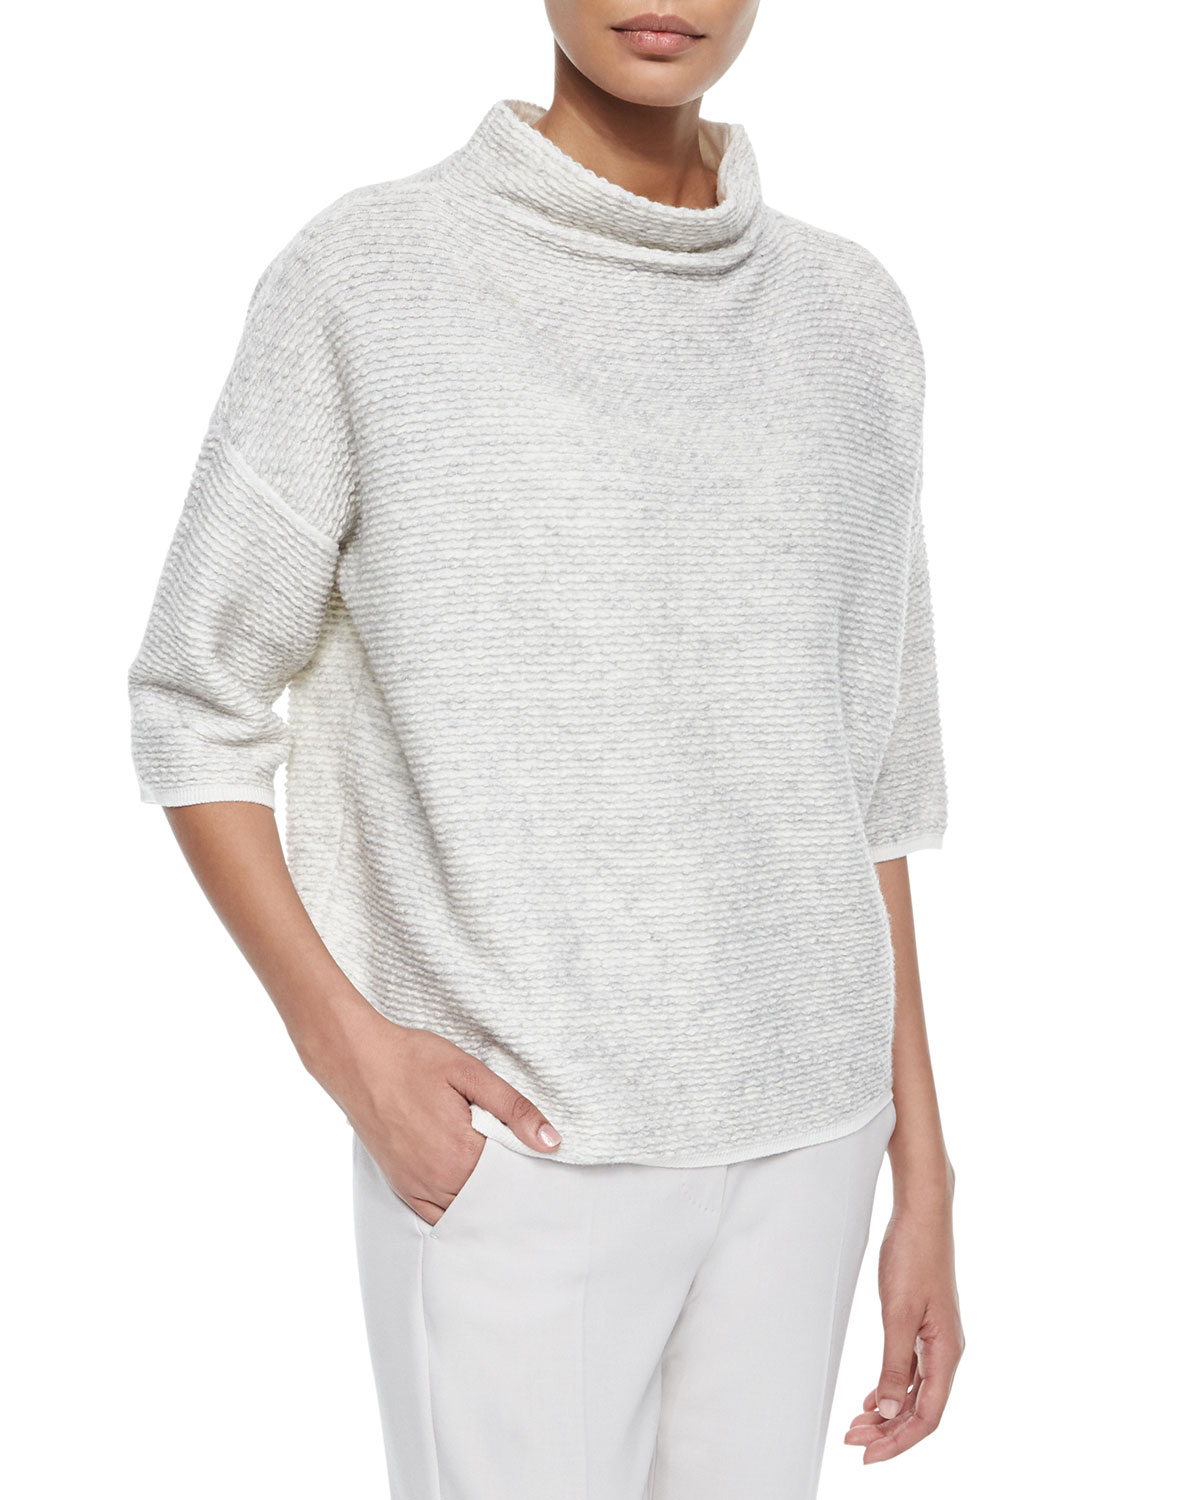 Max Mara knitted jumper Marketable Cheap Online Cheap For Nice Hard Wearing For Cheap l0H4Uhd